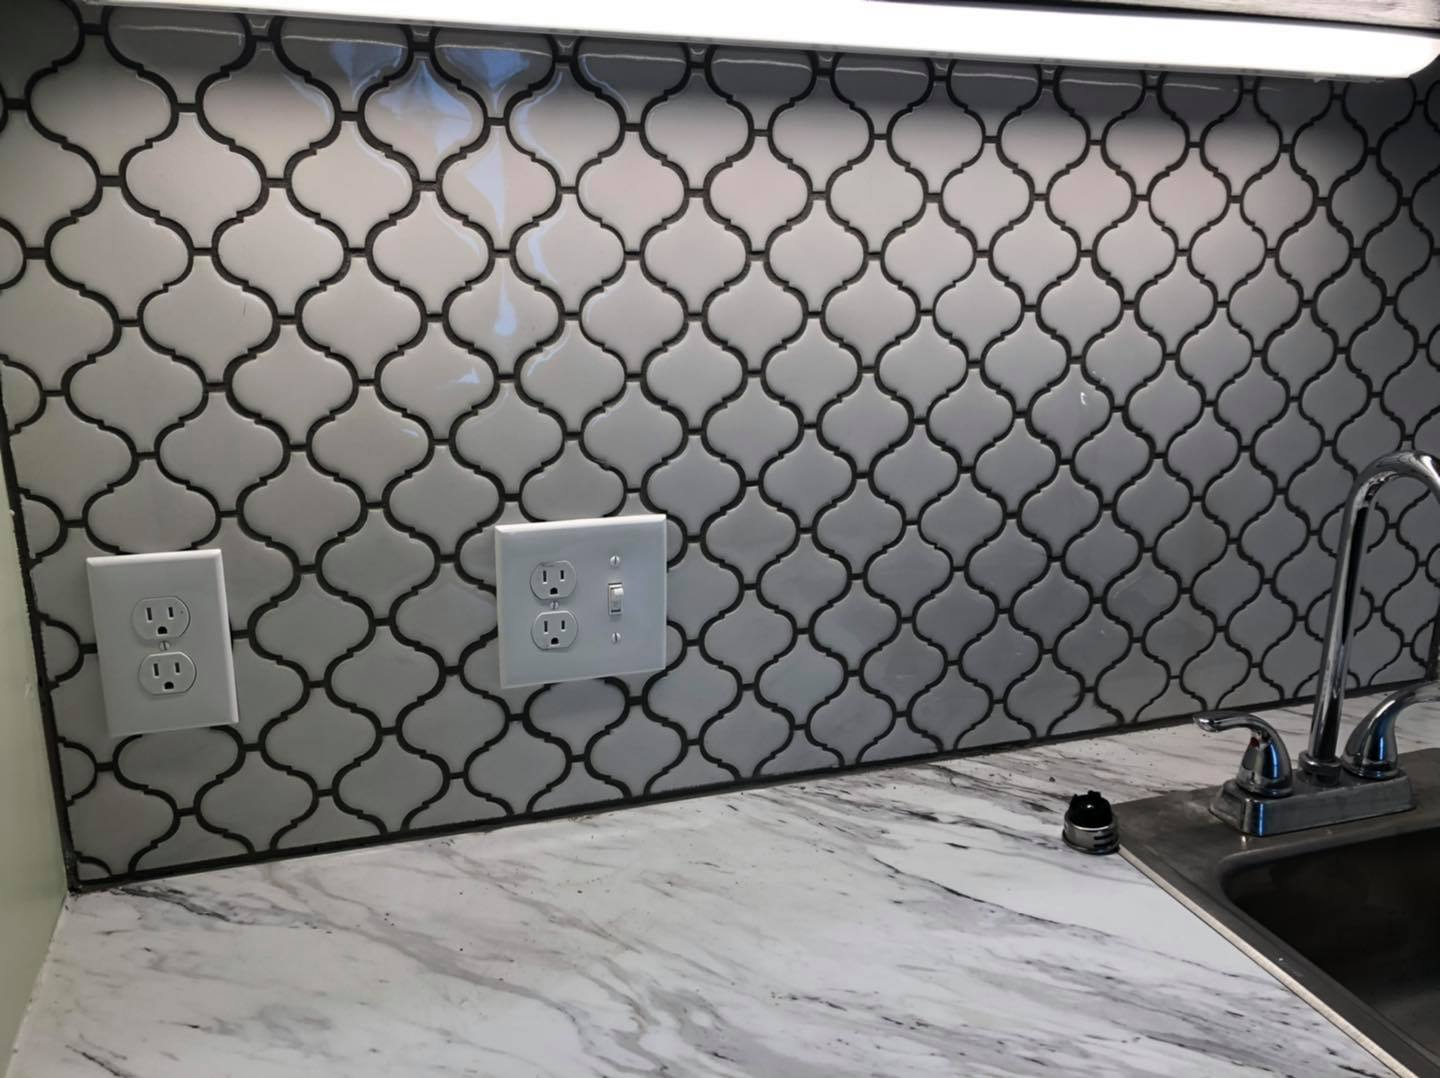 Can you please help us by voting on which backsplash you like best? Best way is